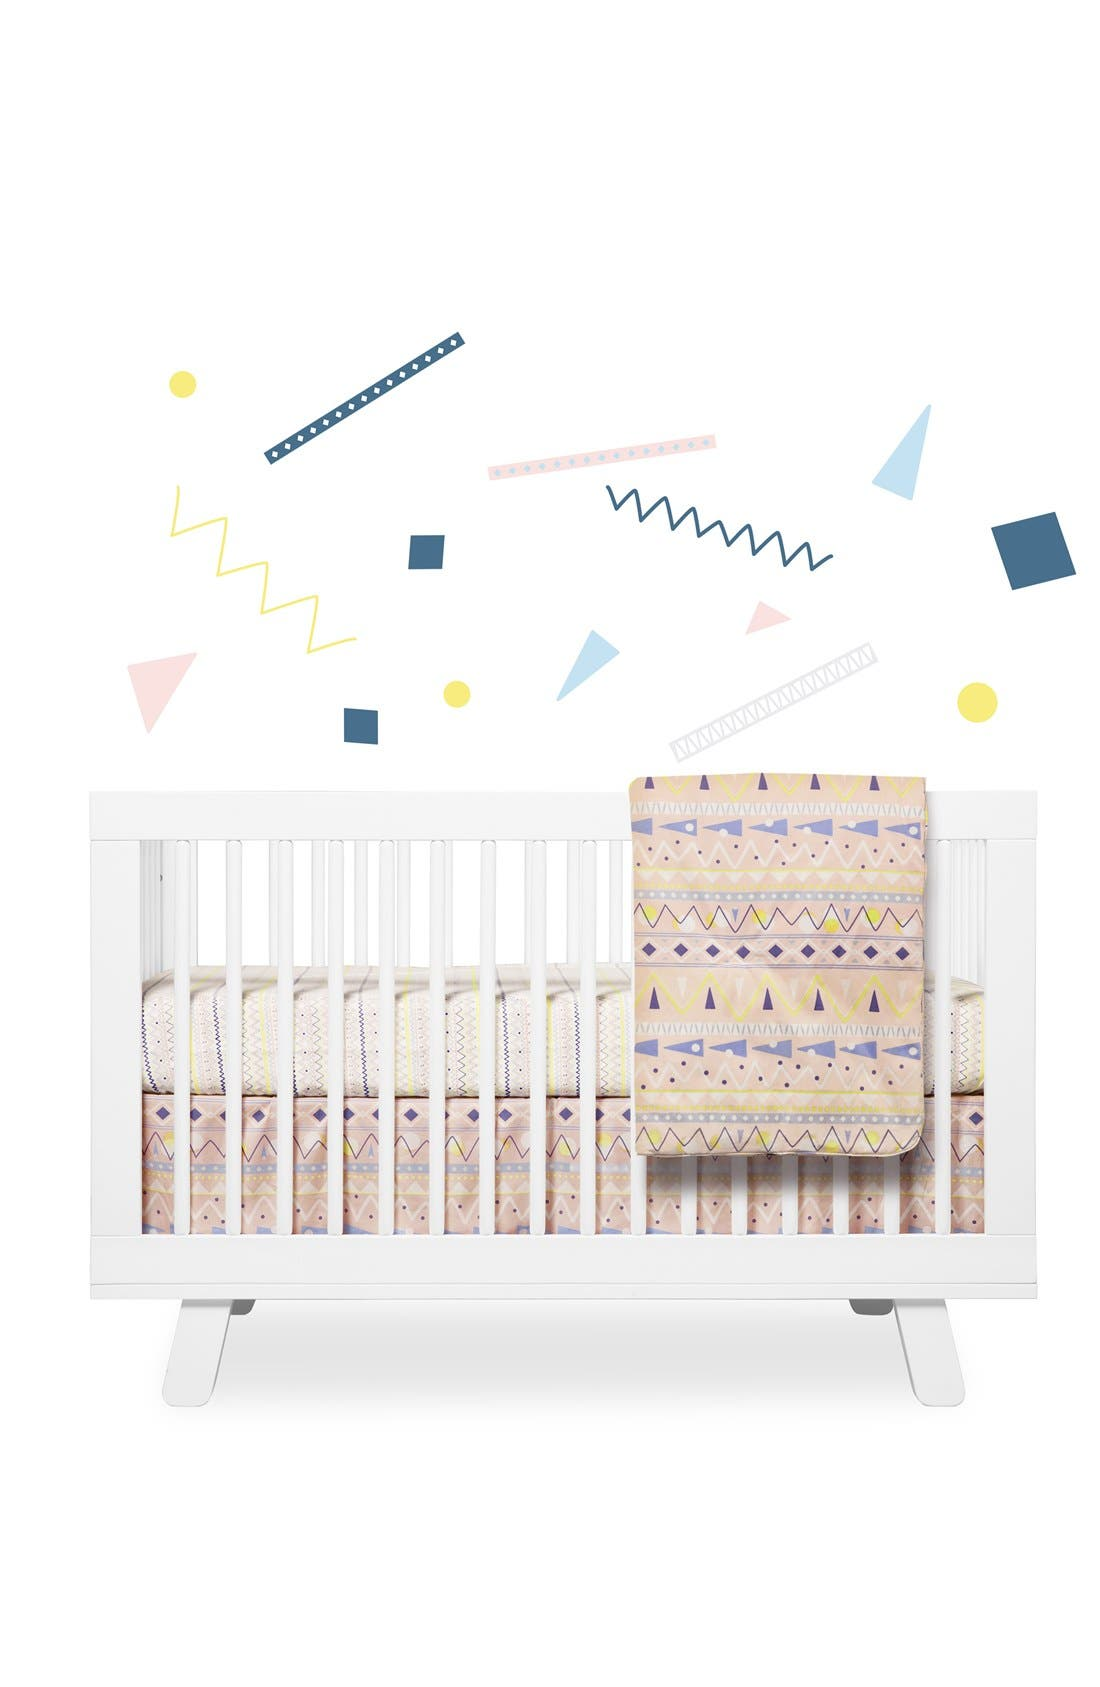 babyletto 'Desert' Crib Sheet, Crib Skirt, Changing Pad Cover, Play Blanket, Stroller Blanket & Wall Decals